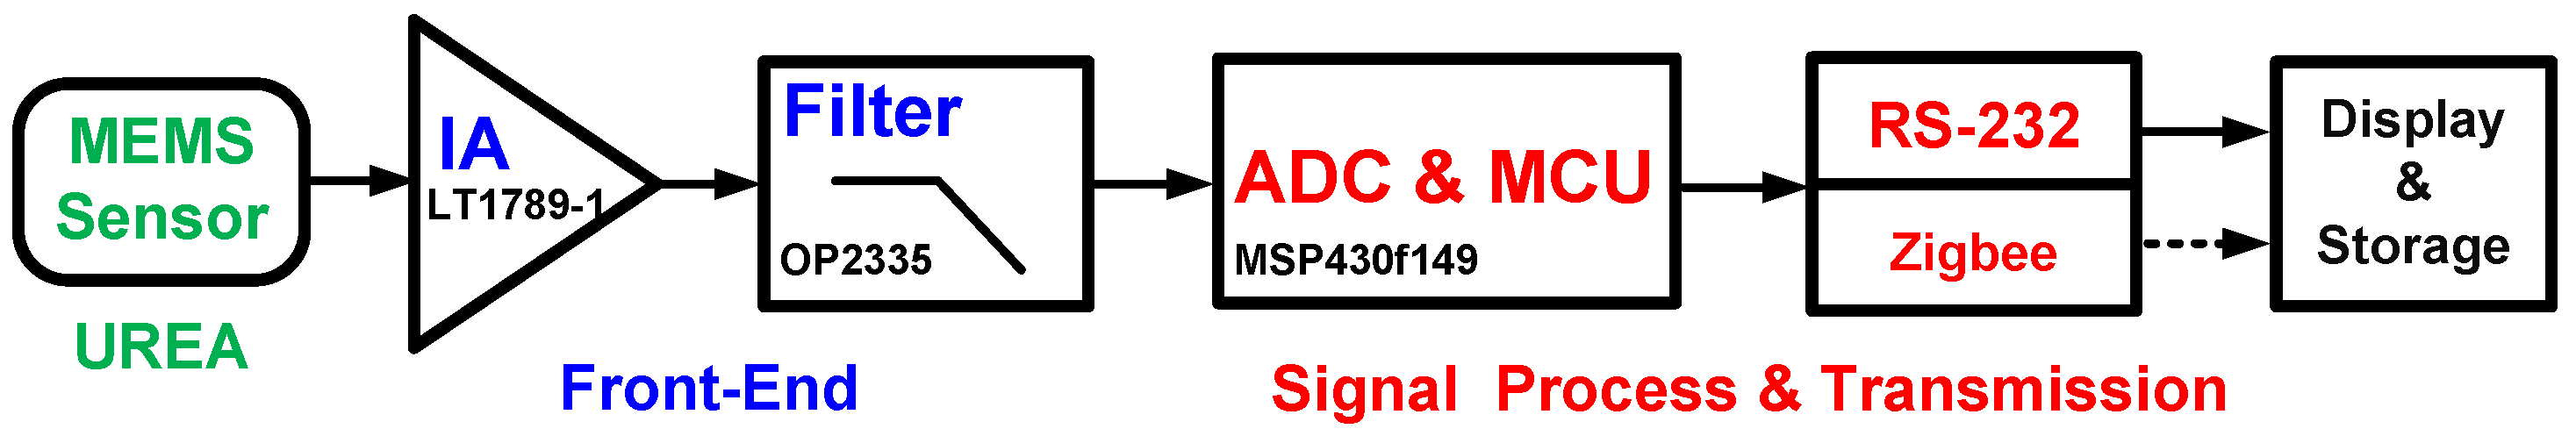 Sensors Free Full Text A Portable Low Power Acquisition System Schematic Of Crude Ecg Circuit 16 00474 G003 1024